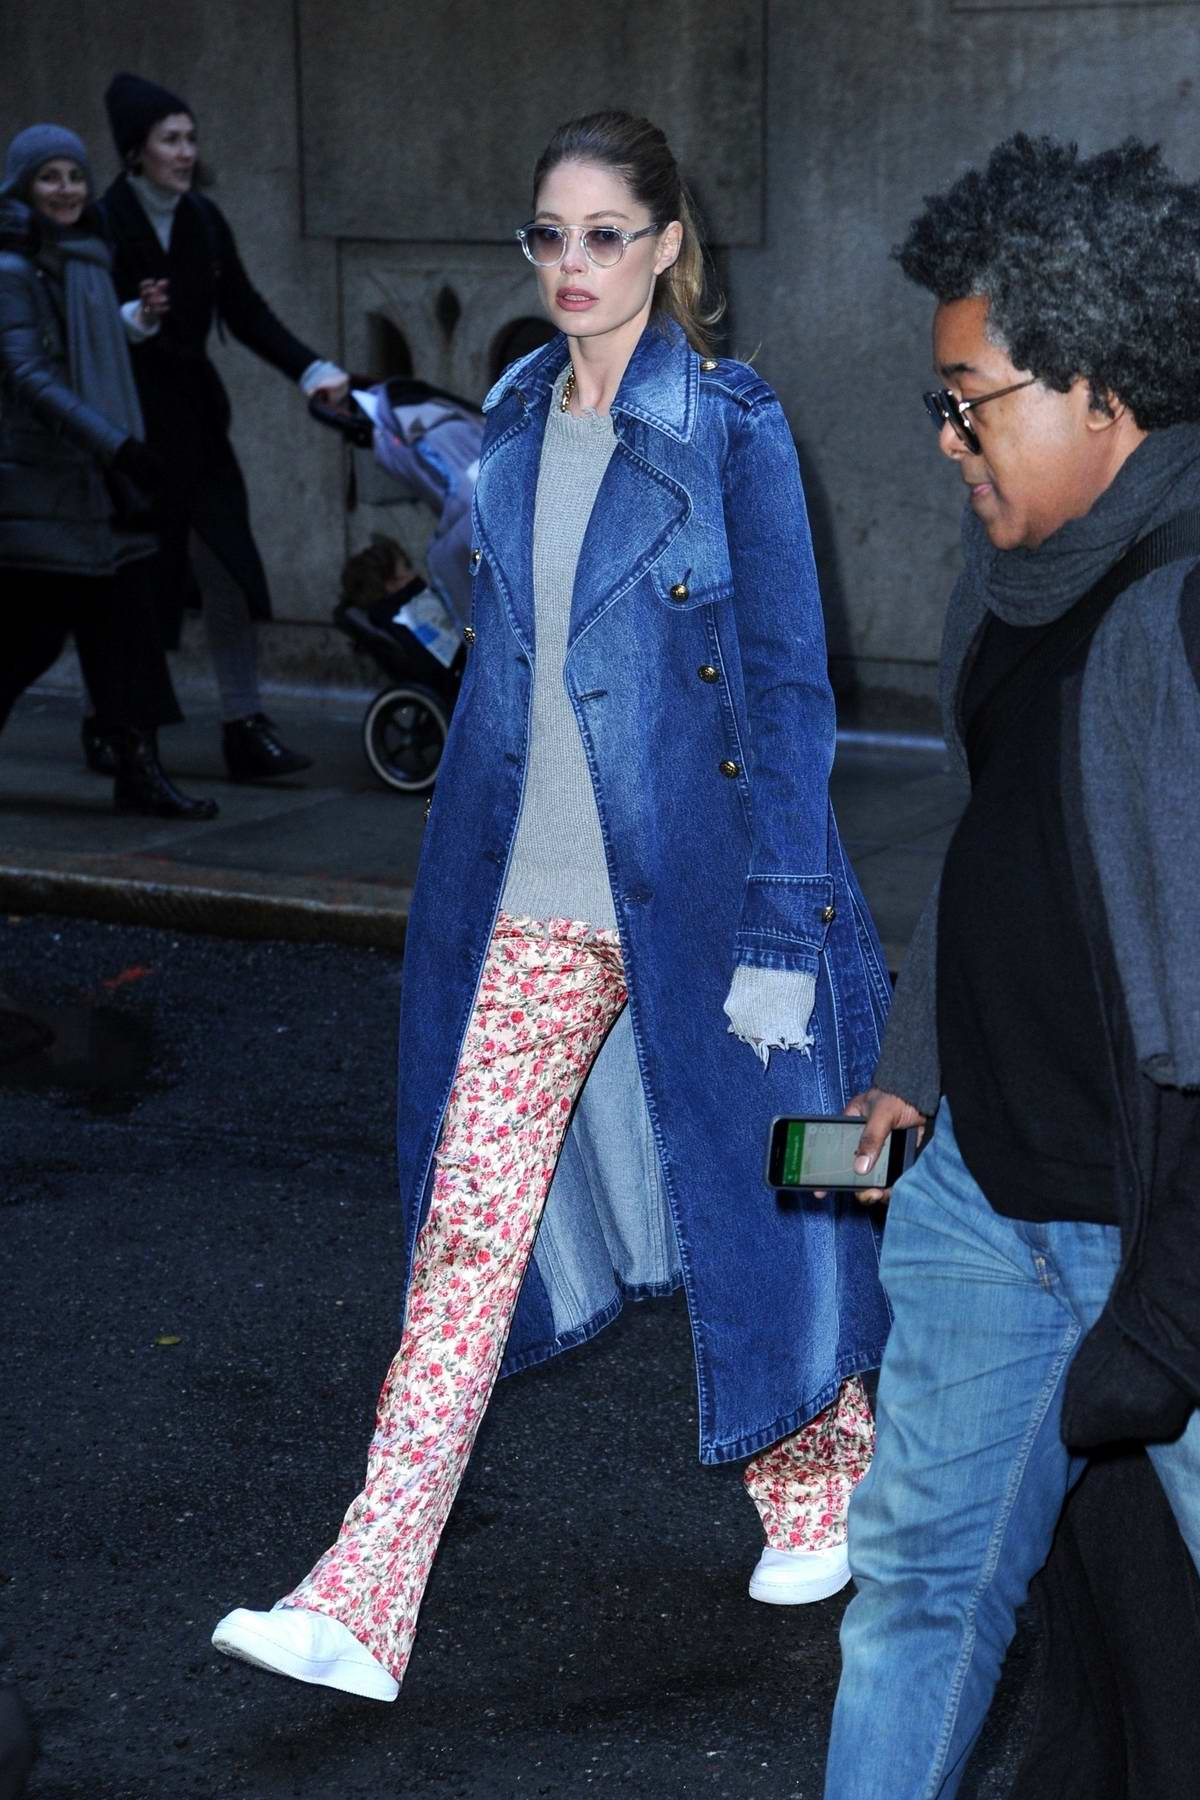 Doutzen Kroes attends Michael Kors fashion show during New York Fashion Week in New York City